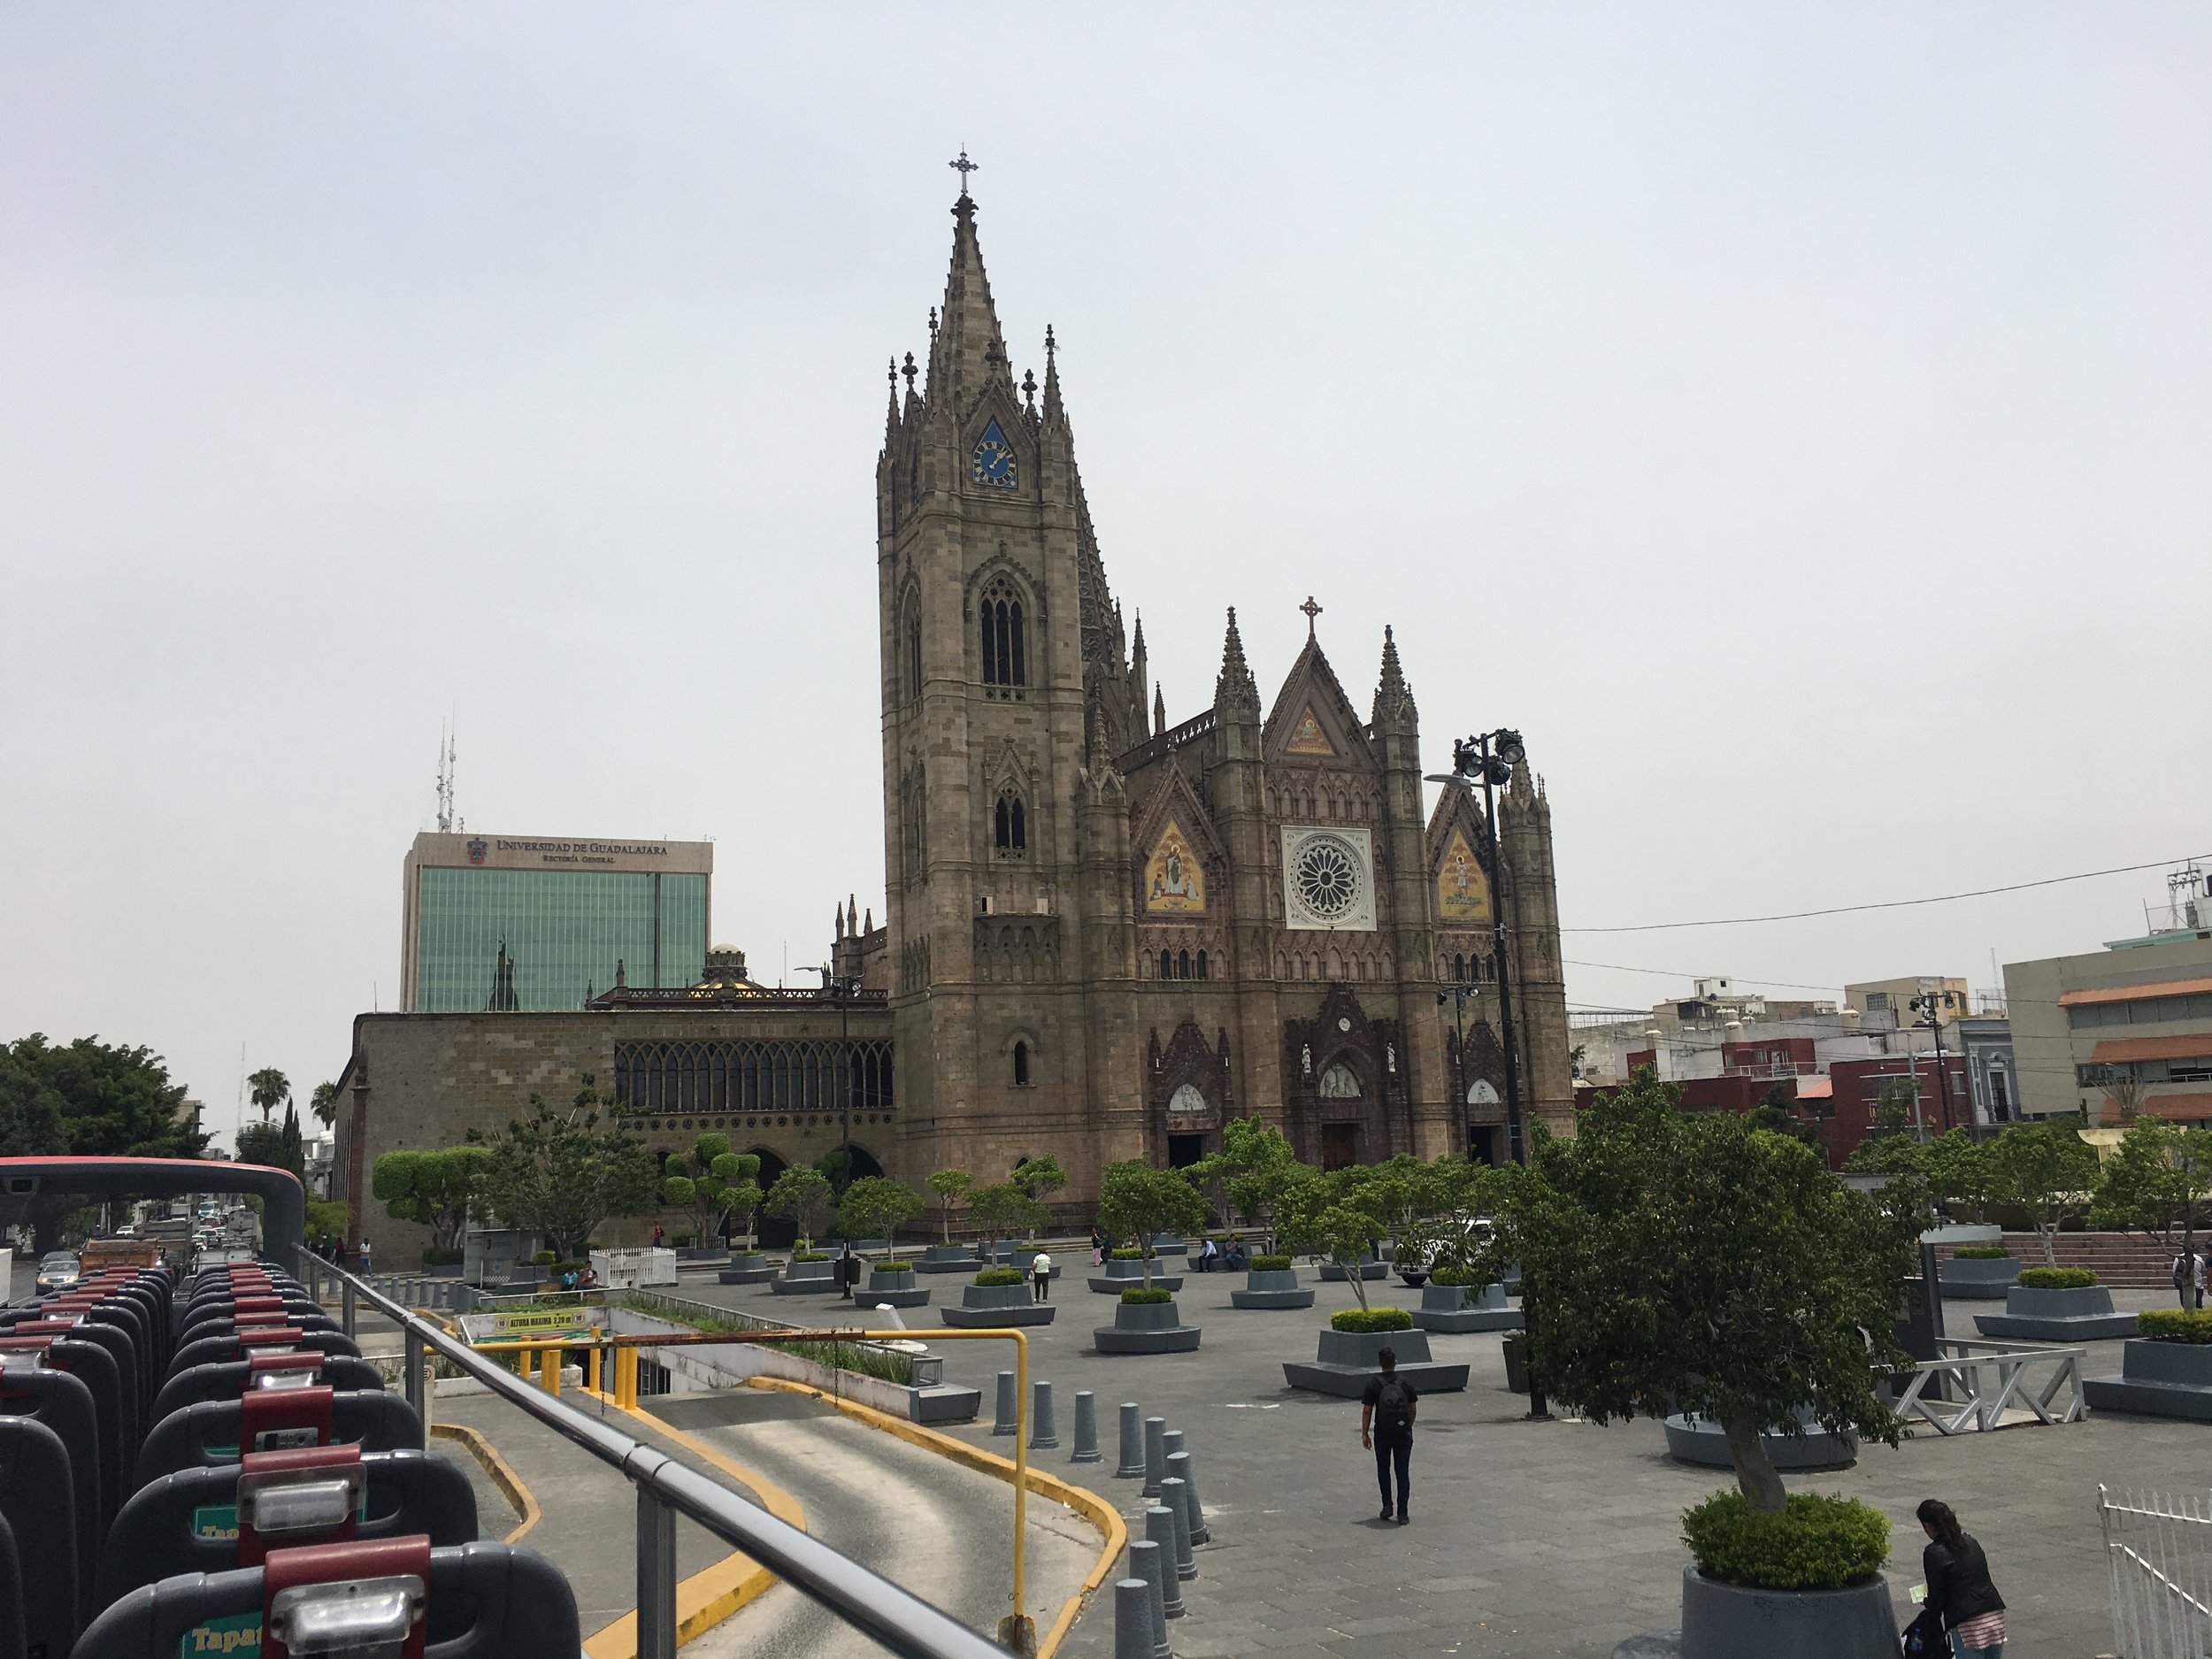 In 1818 an earthquake shook the city, causing the towers and the dome to collapse. These were replaced, but the new structures were destroyed by a subsequent earthquake in 1849, and was damaged by earthquakes again in 1932, 1957, 1979, 1985, 1995 and 2003.